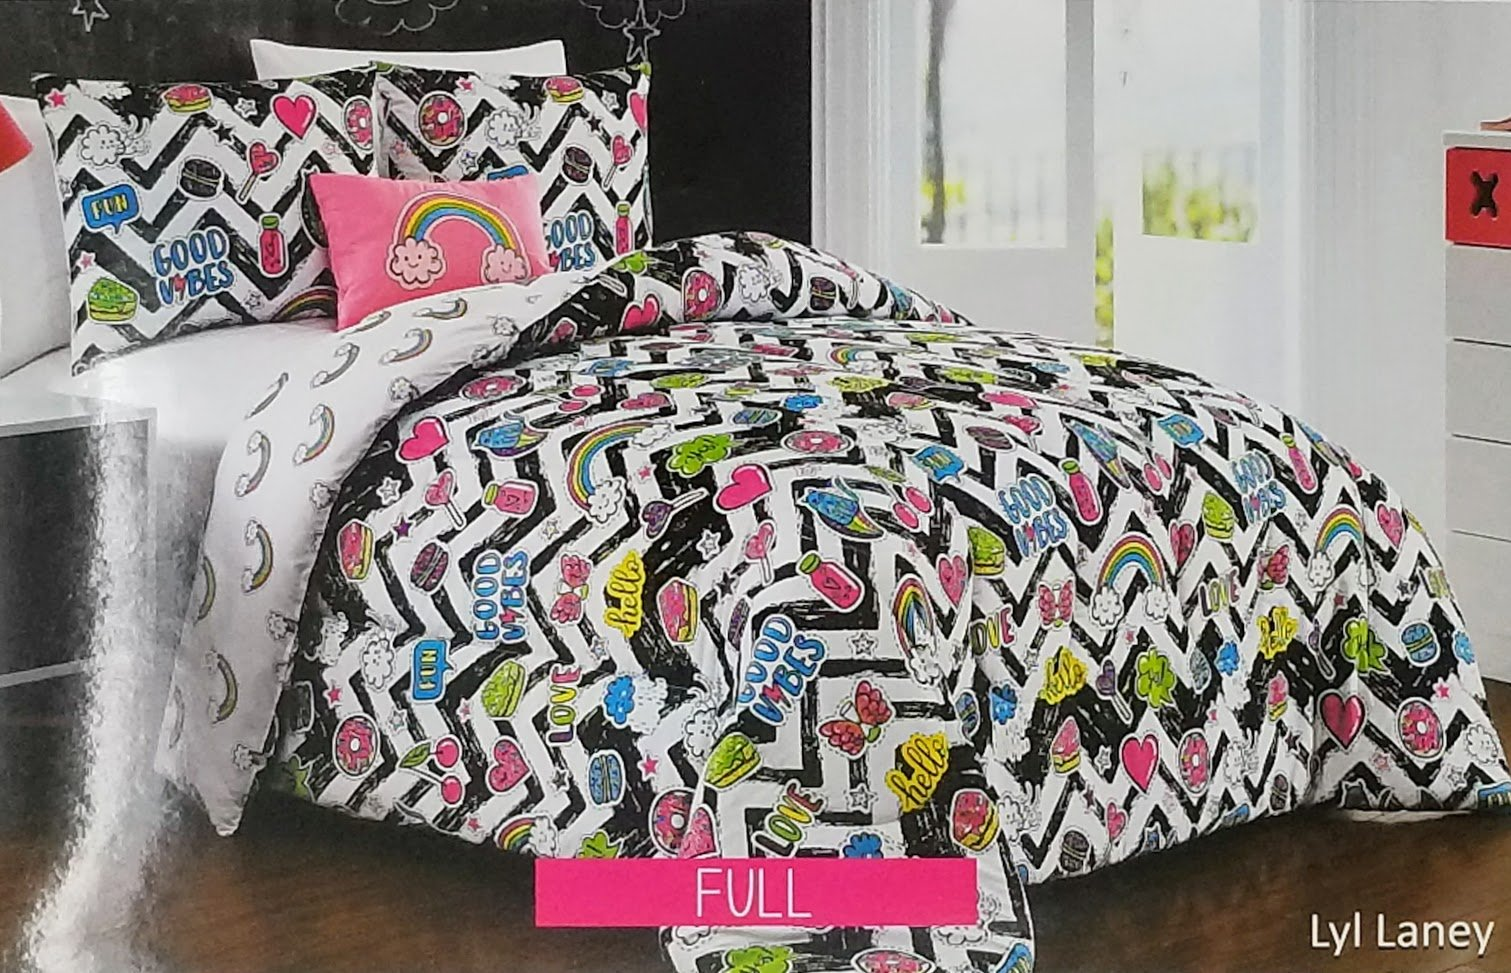 Dot and Dash 4pc Full Comforter Set ''Lyl Laney'' Good Vibes, Fun, Rainbows